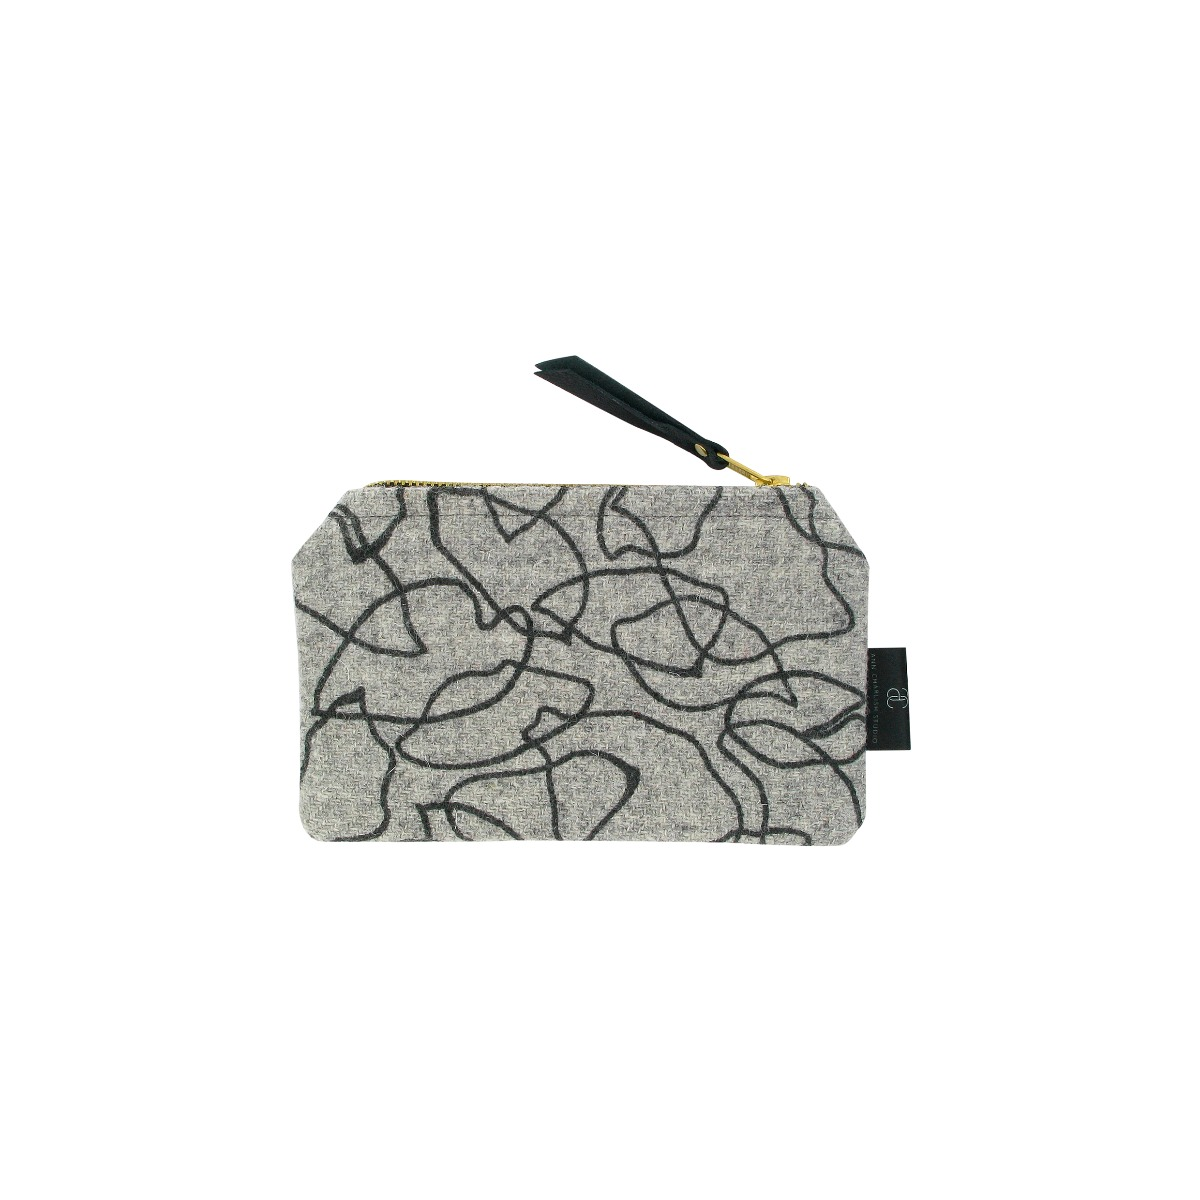 Grey coin purse